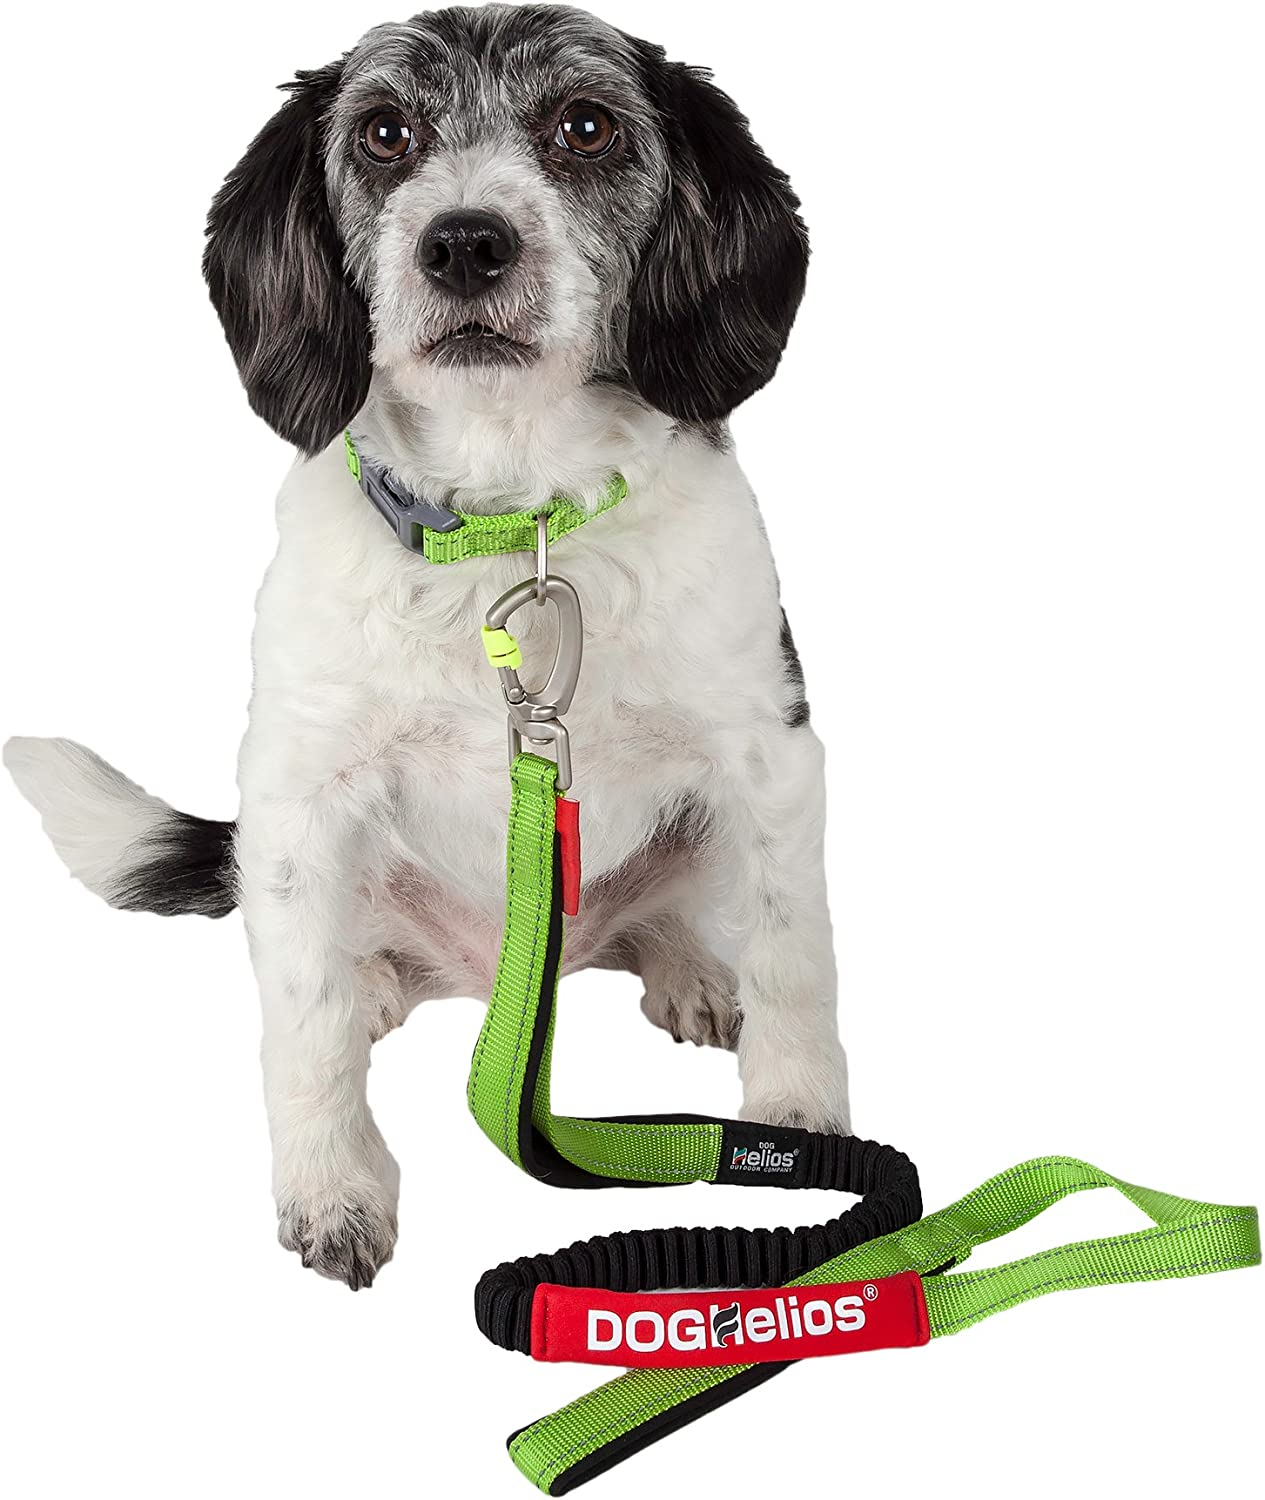 DOGHELIOS 'NeoIndestructible' Embroidered Thick Durable Pet Dog Leash and Collar, Medium, Green